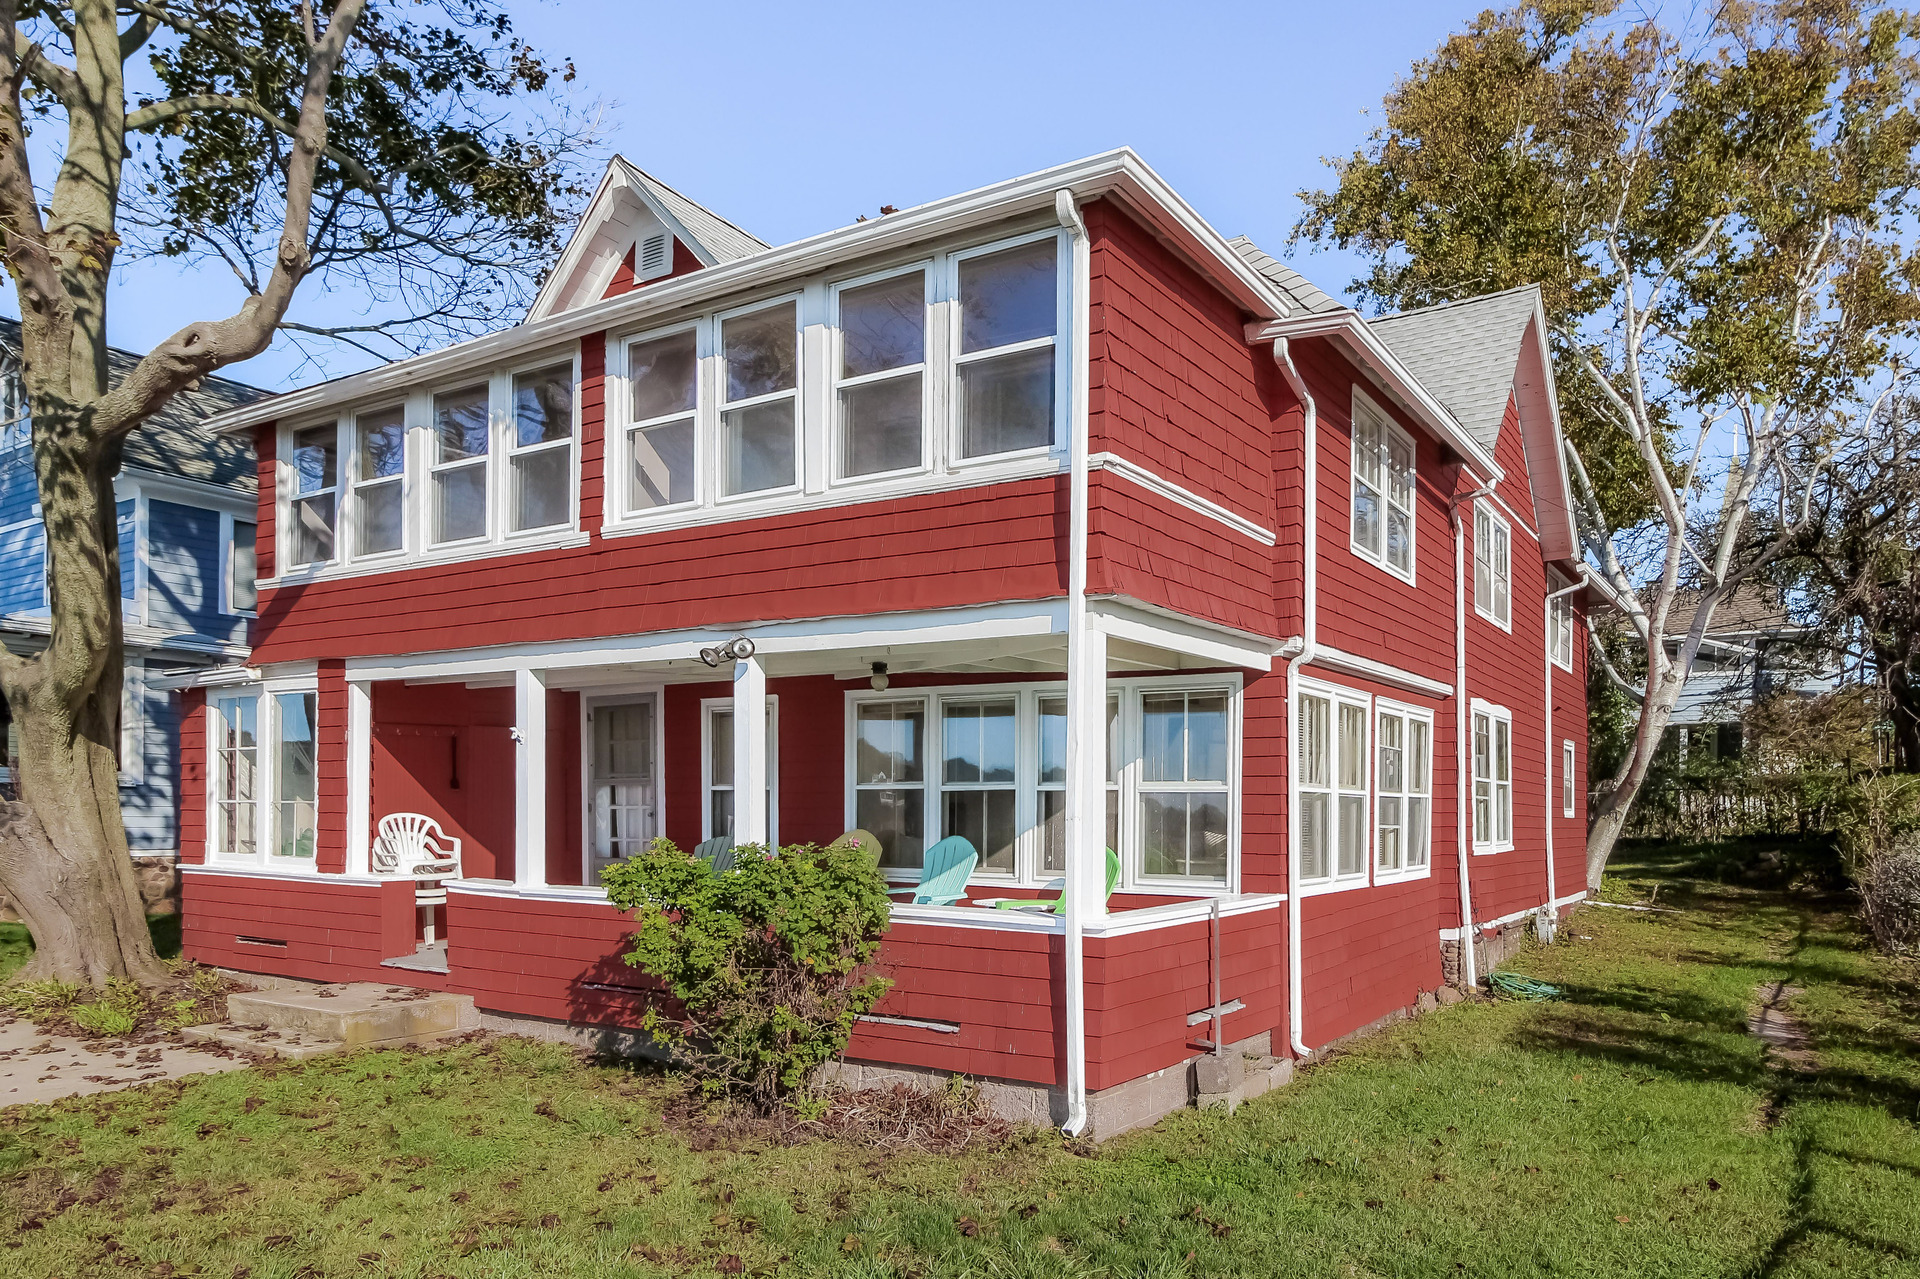 Single Family Home for Sale at Beckett Ave 65 Beckett Ave Branford, Connecticut, 06405 United States